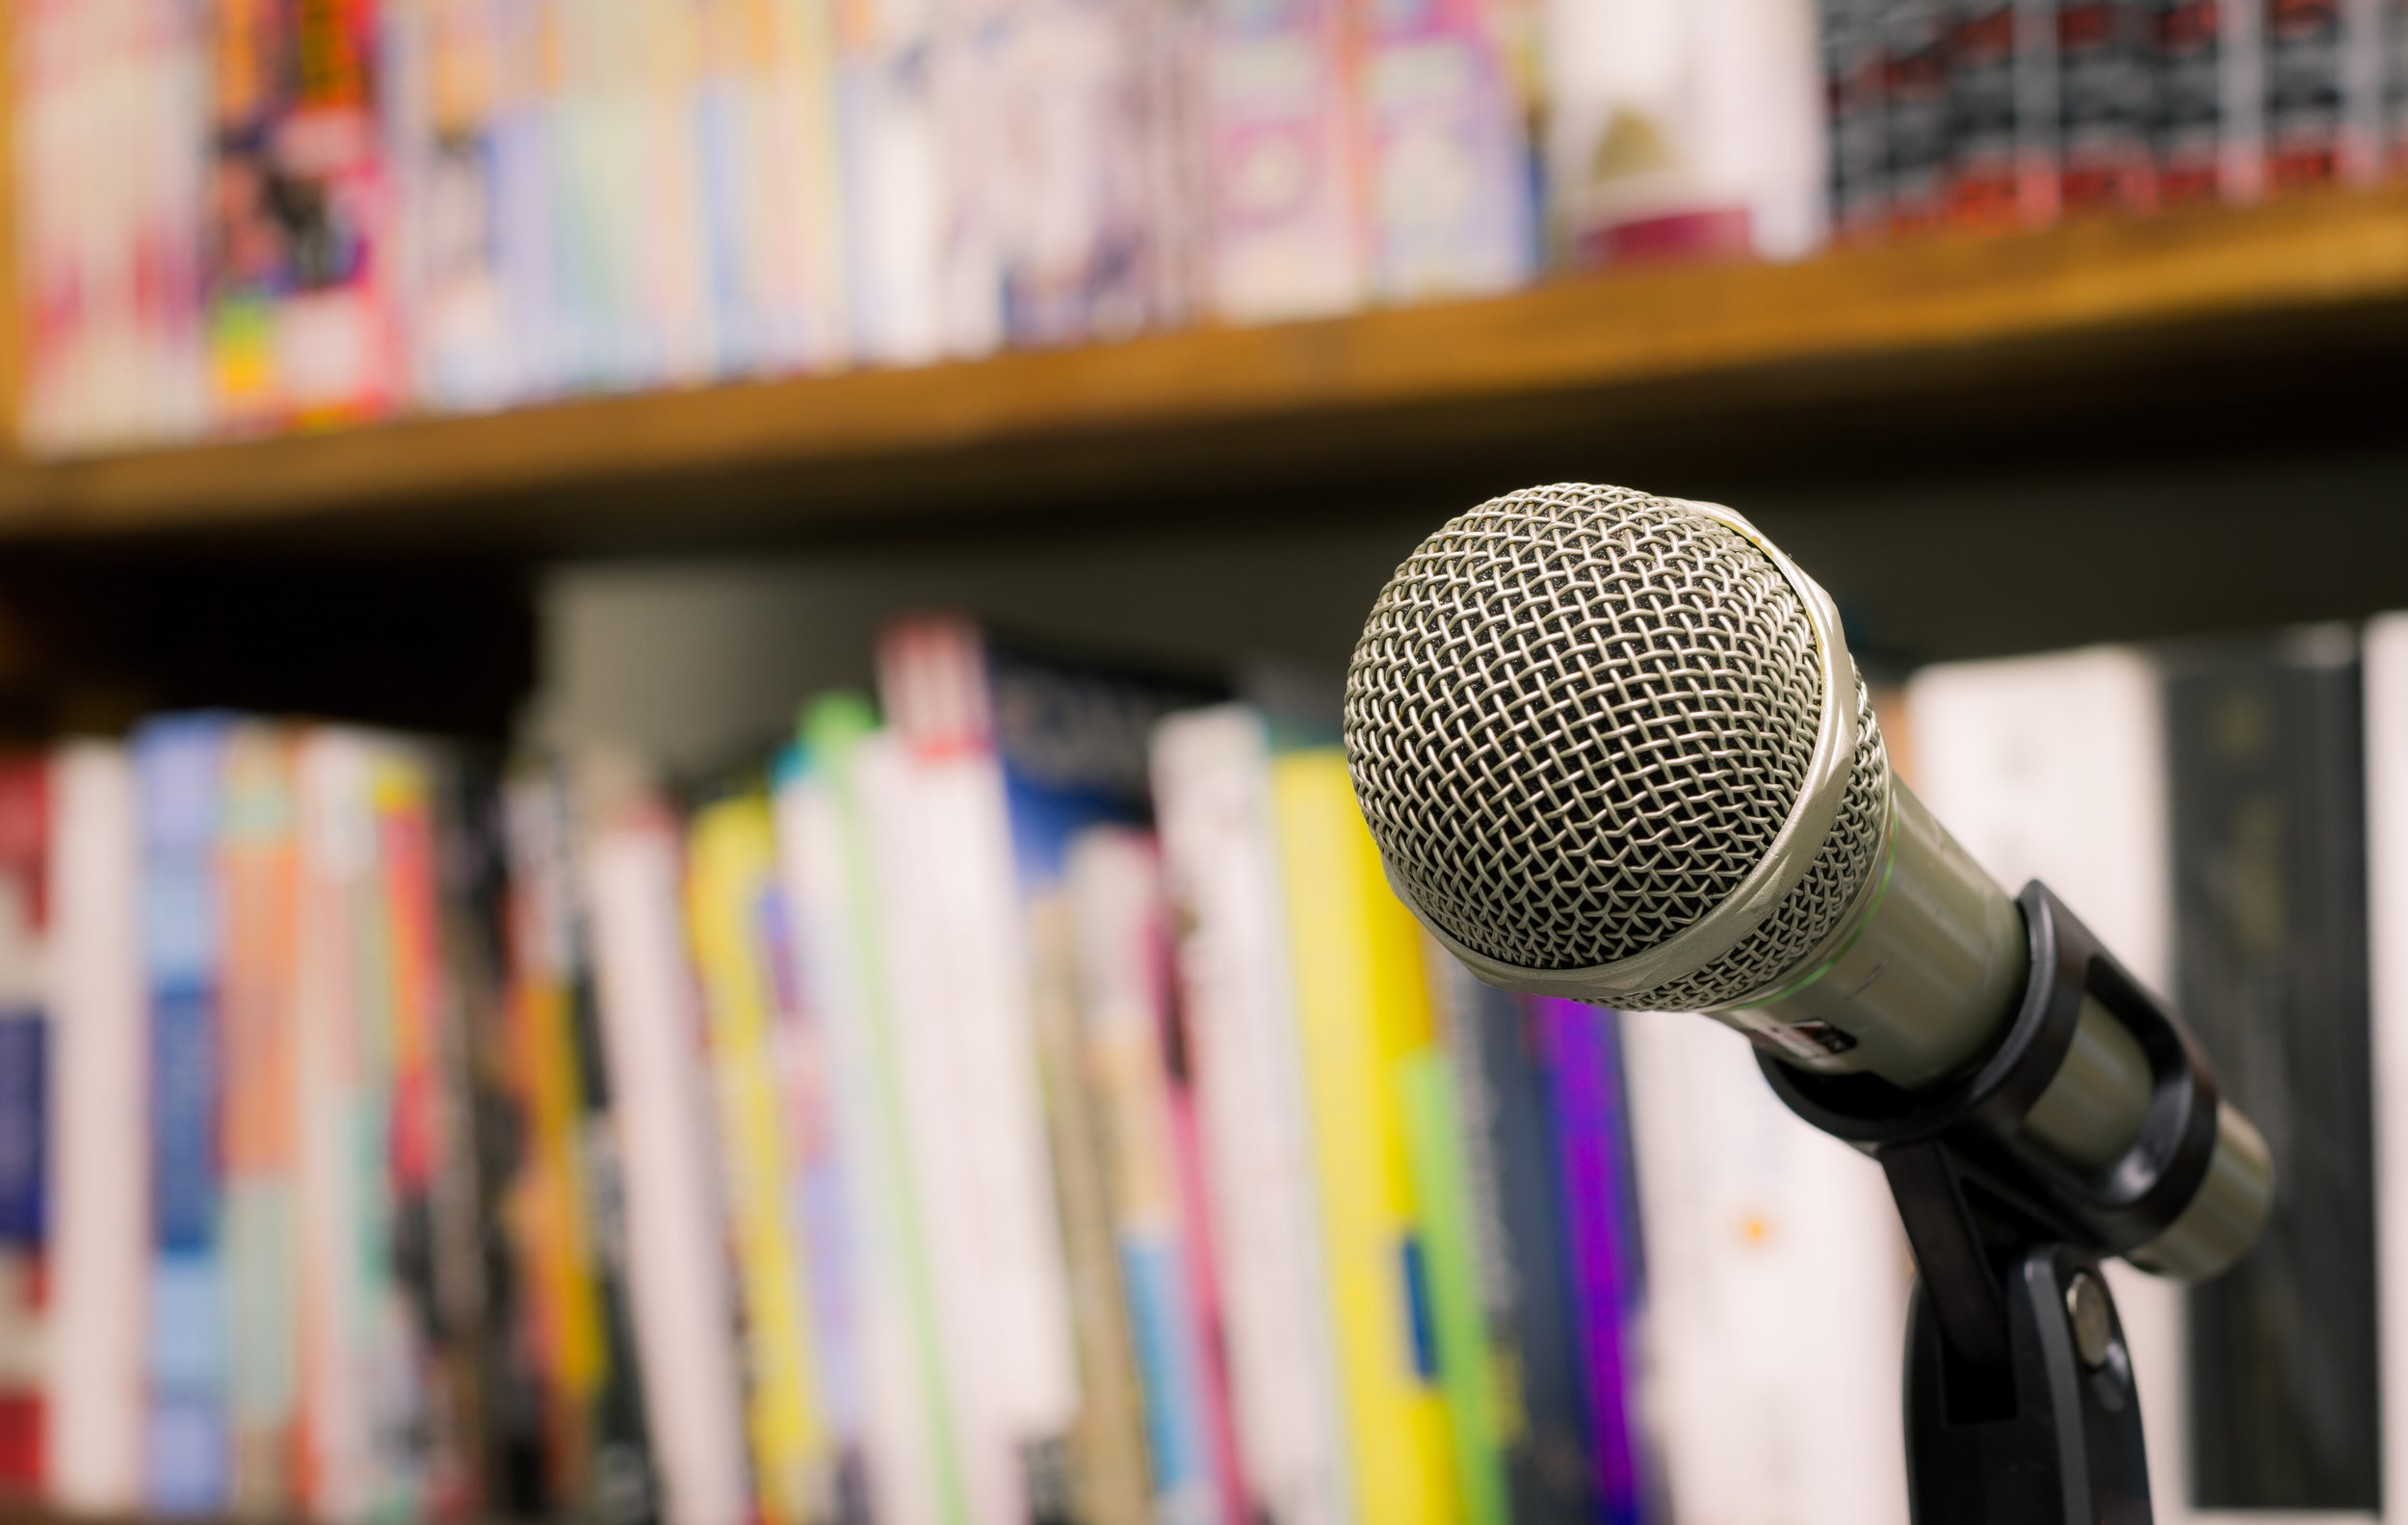 Microphone On The Background Of Blurred Bookshelf  In Library. S